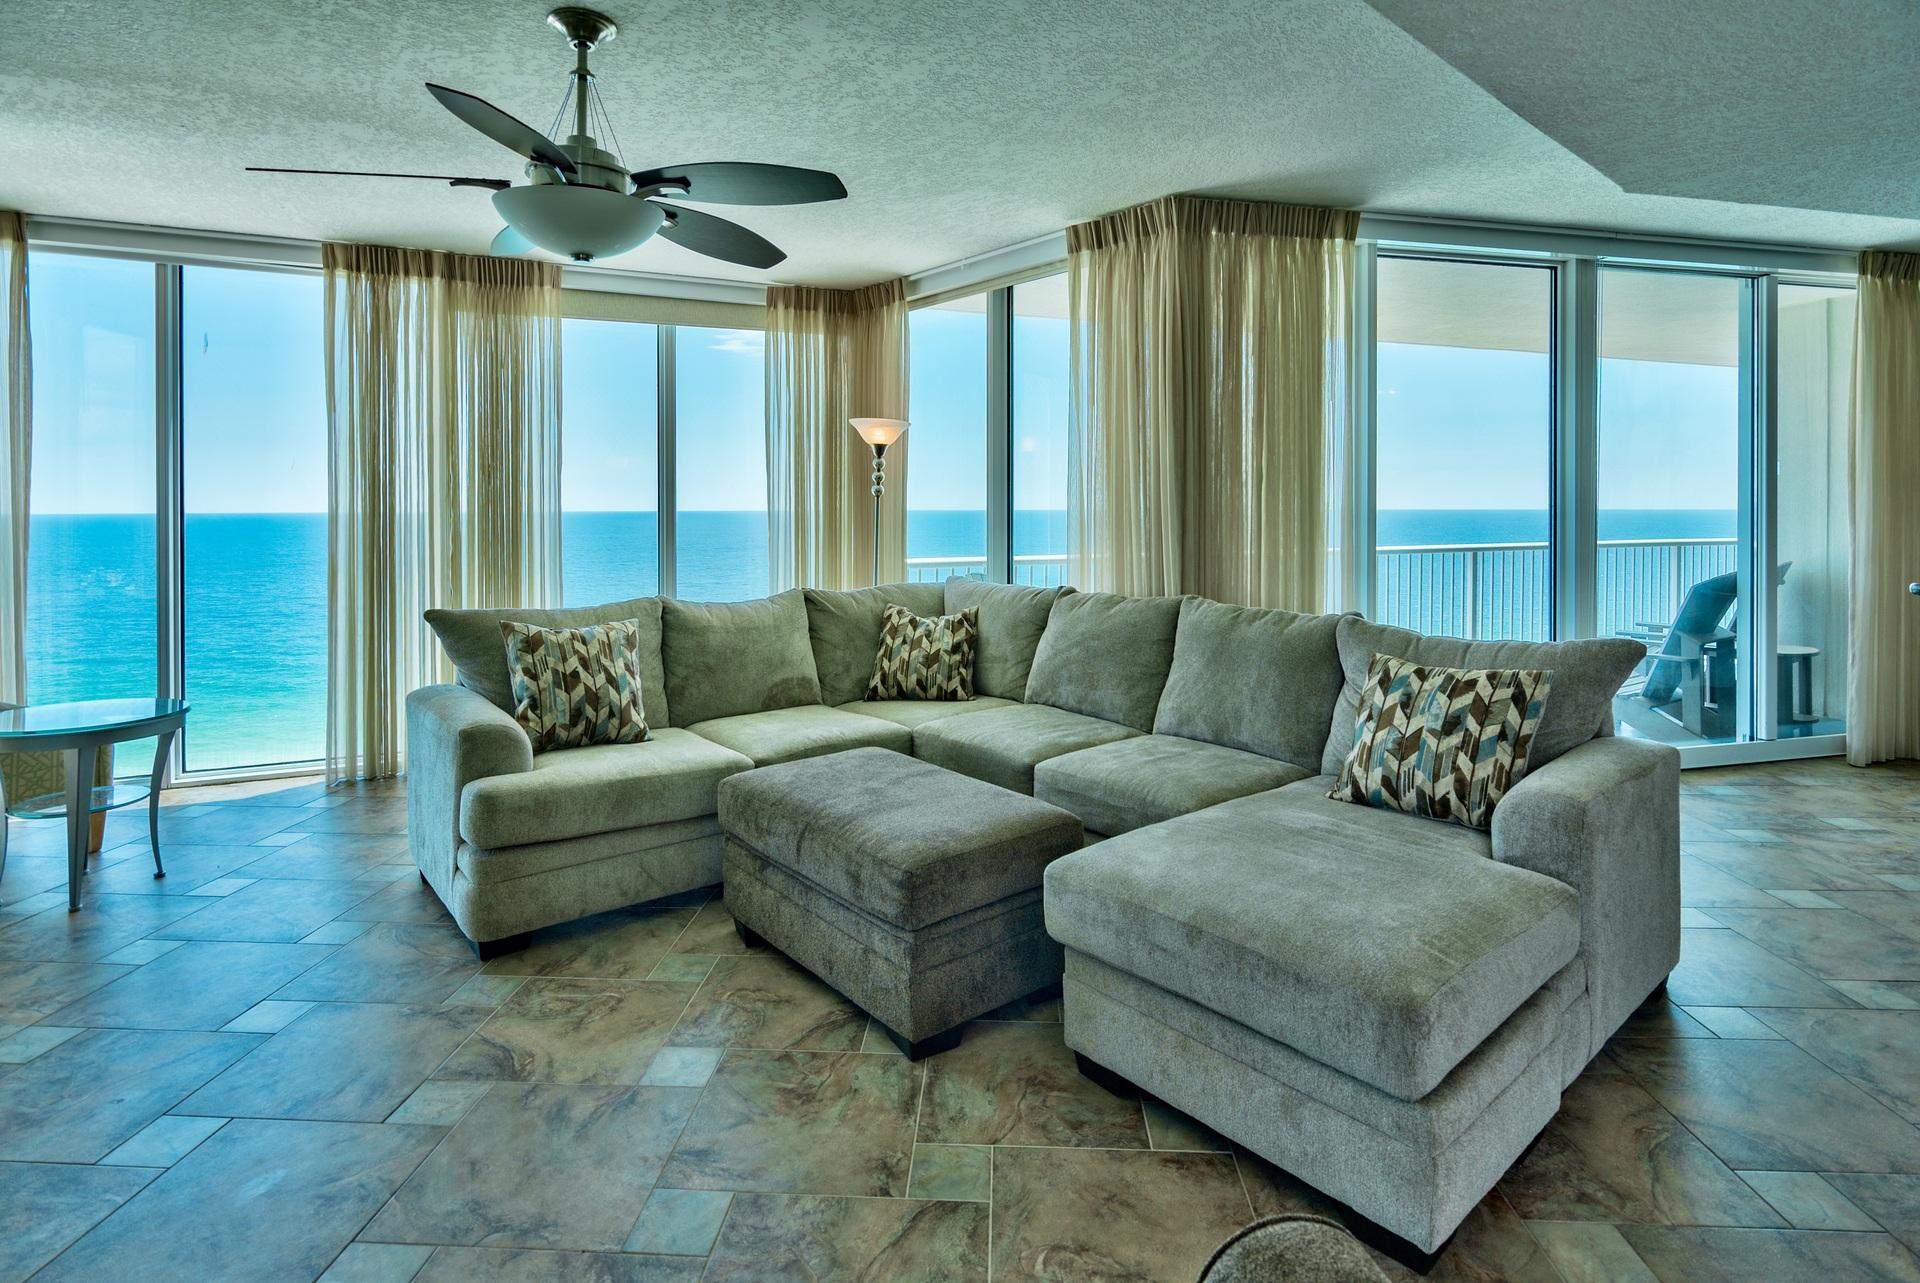 Have you been waiting for an updated corner unit at Palazzo with breathtaking views? Unit #1501 is an incredible 3-bedroom, 3-bath, Gulf front East corner unit that is being sold fully furnished and beautifully decorated with flat screen TVs. The entire corner as well as the front of the unit is nothing but floor to ceiling glass that maximize the views for a tremendous wow factor as you enter! The glass is high quality & UV tinted. Enjoy the spacious 229 ft. balcony with access from both the living area & master bedroom. Interior features an open floor plan totaling ~1,849 sq. ft., 9 ft. raised ceilings & crown molding. This home features beautiful custom tile floors, new custom curtains (nearly $7k value) and luxurious coastal decor. Pride of ownership is apparent the moment you step in!